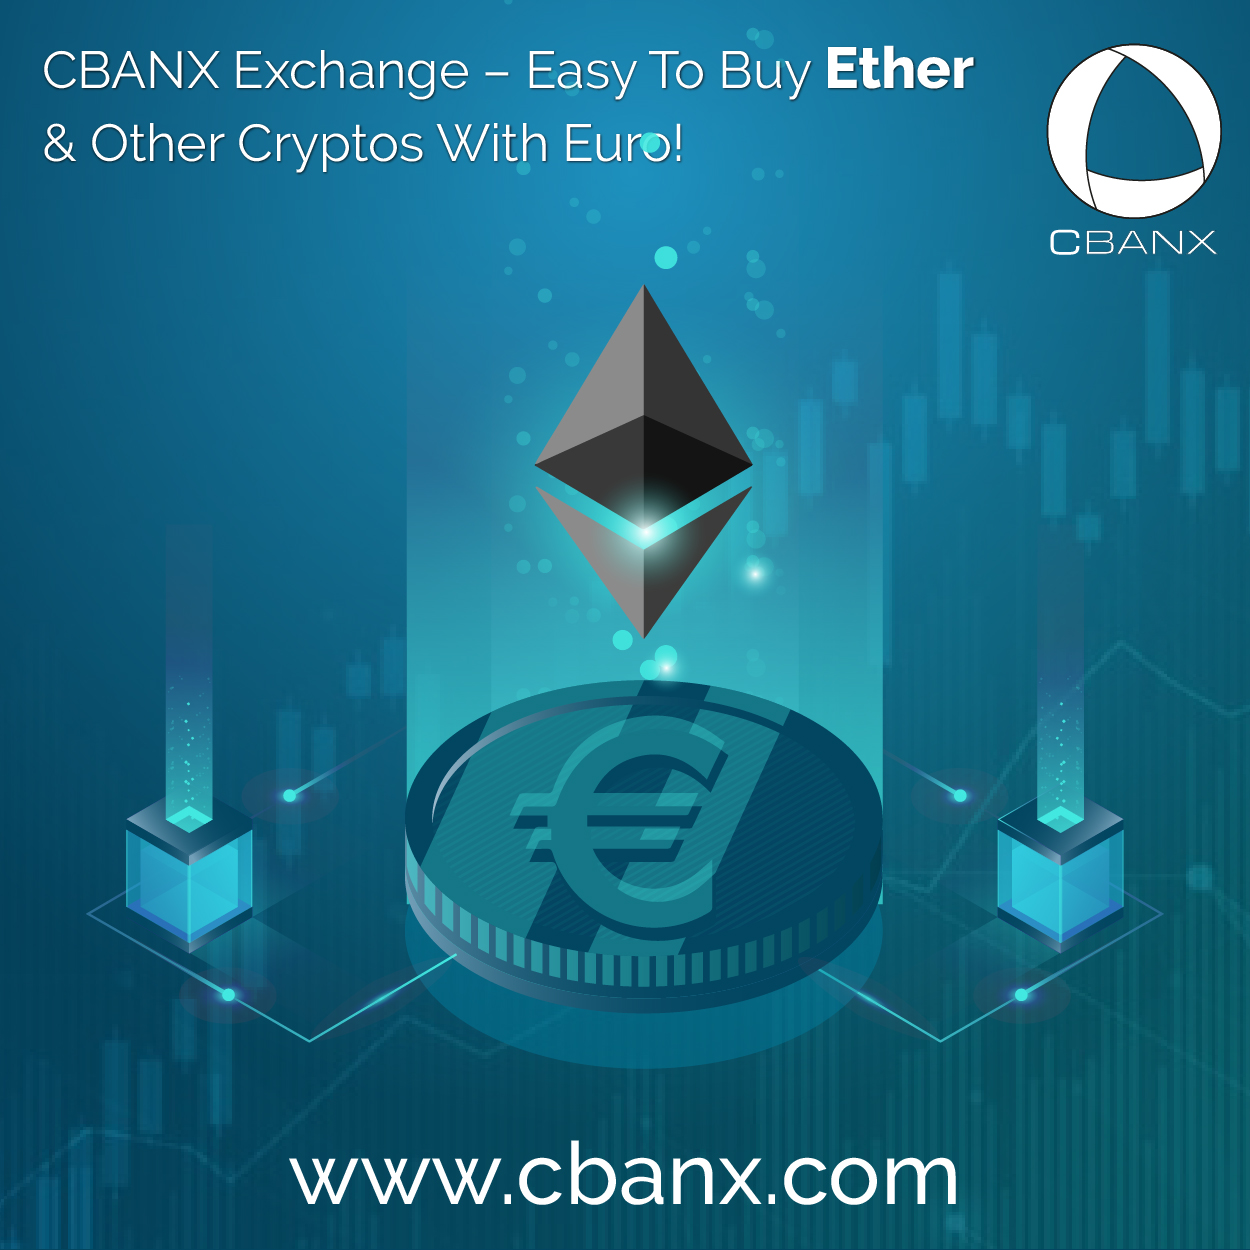 CBANX Exchange – Easy To Buy Ether & Other Cryptos With Euro!